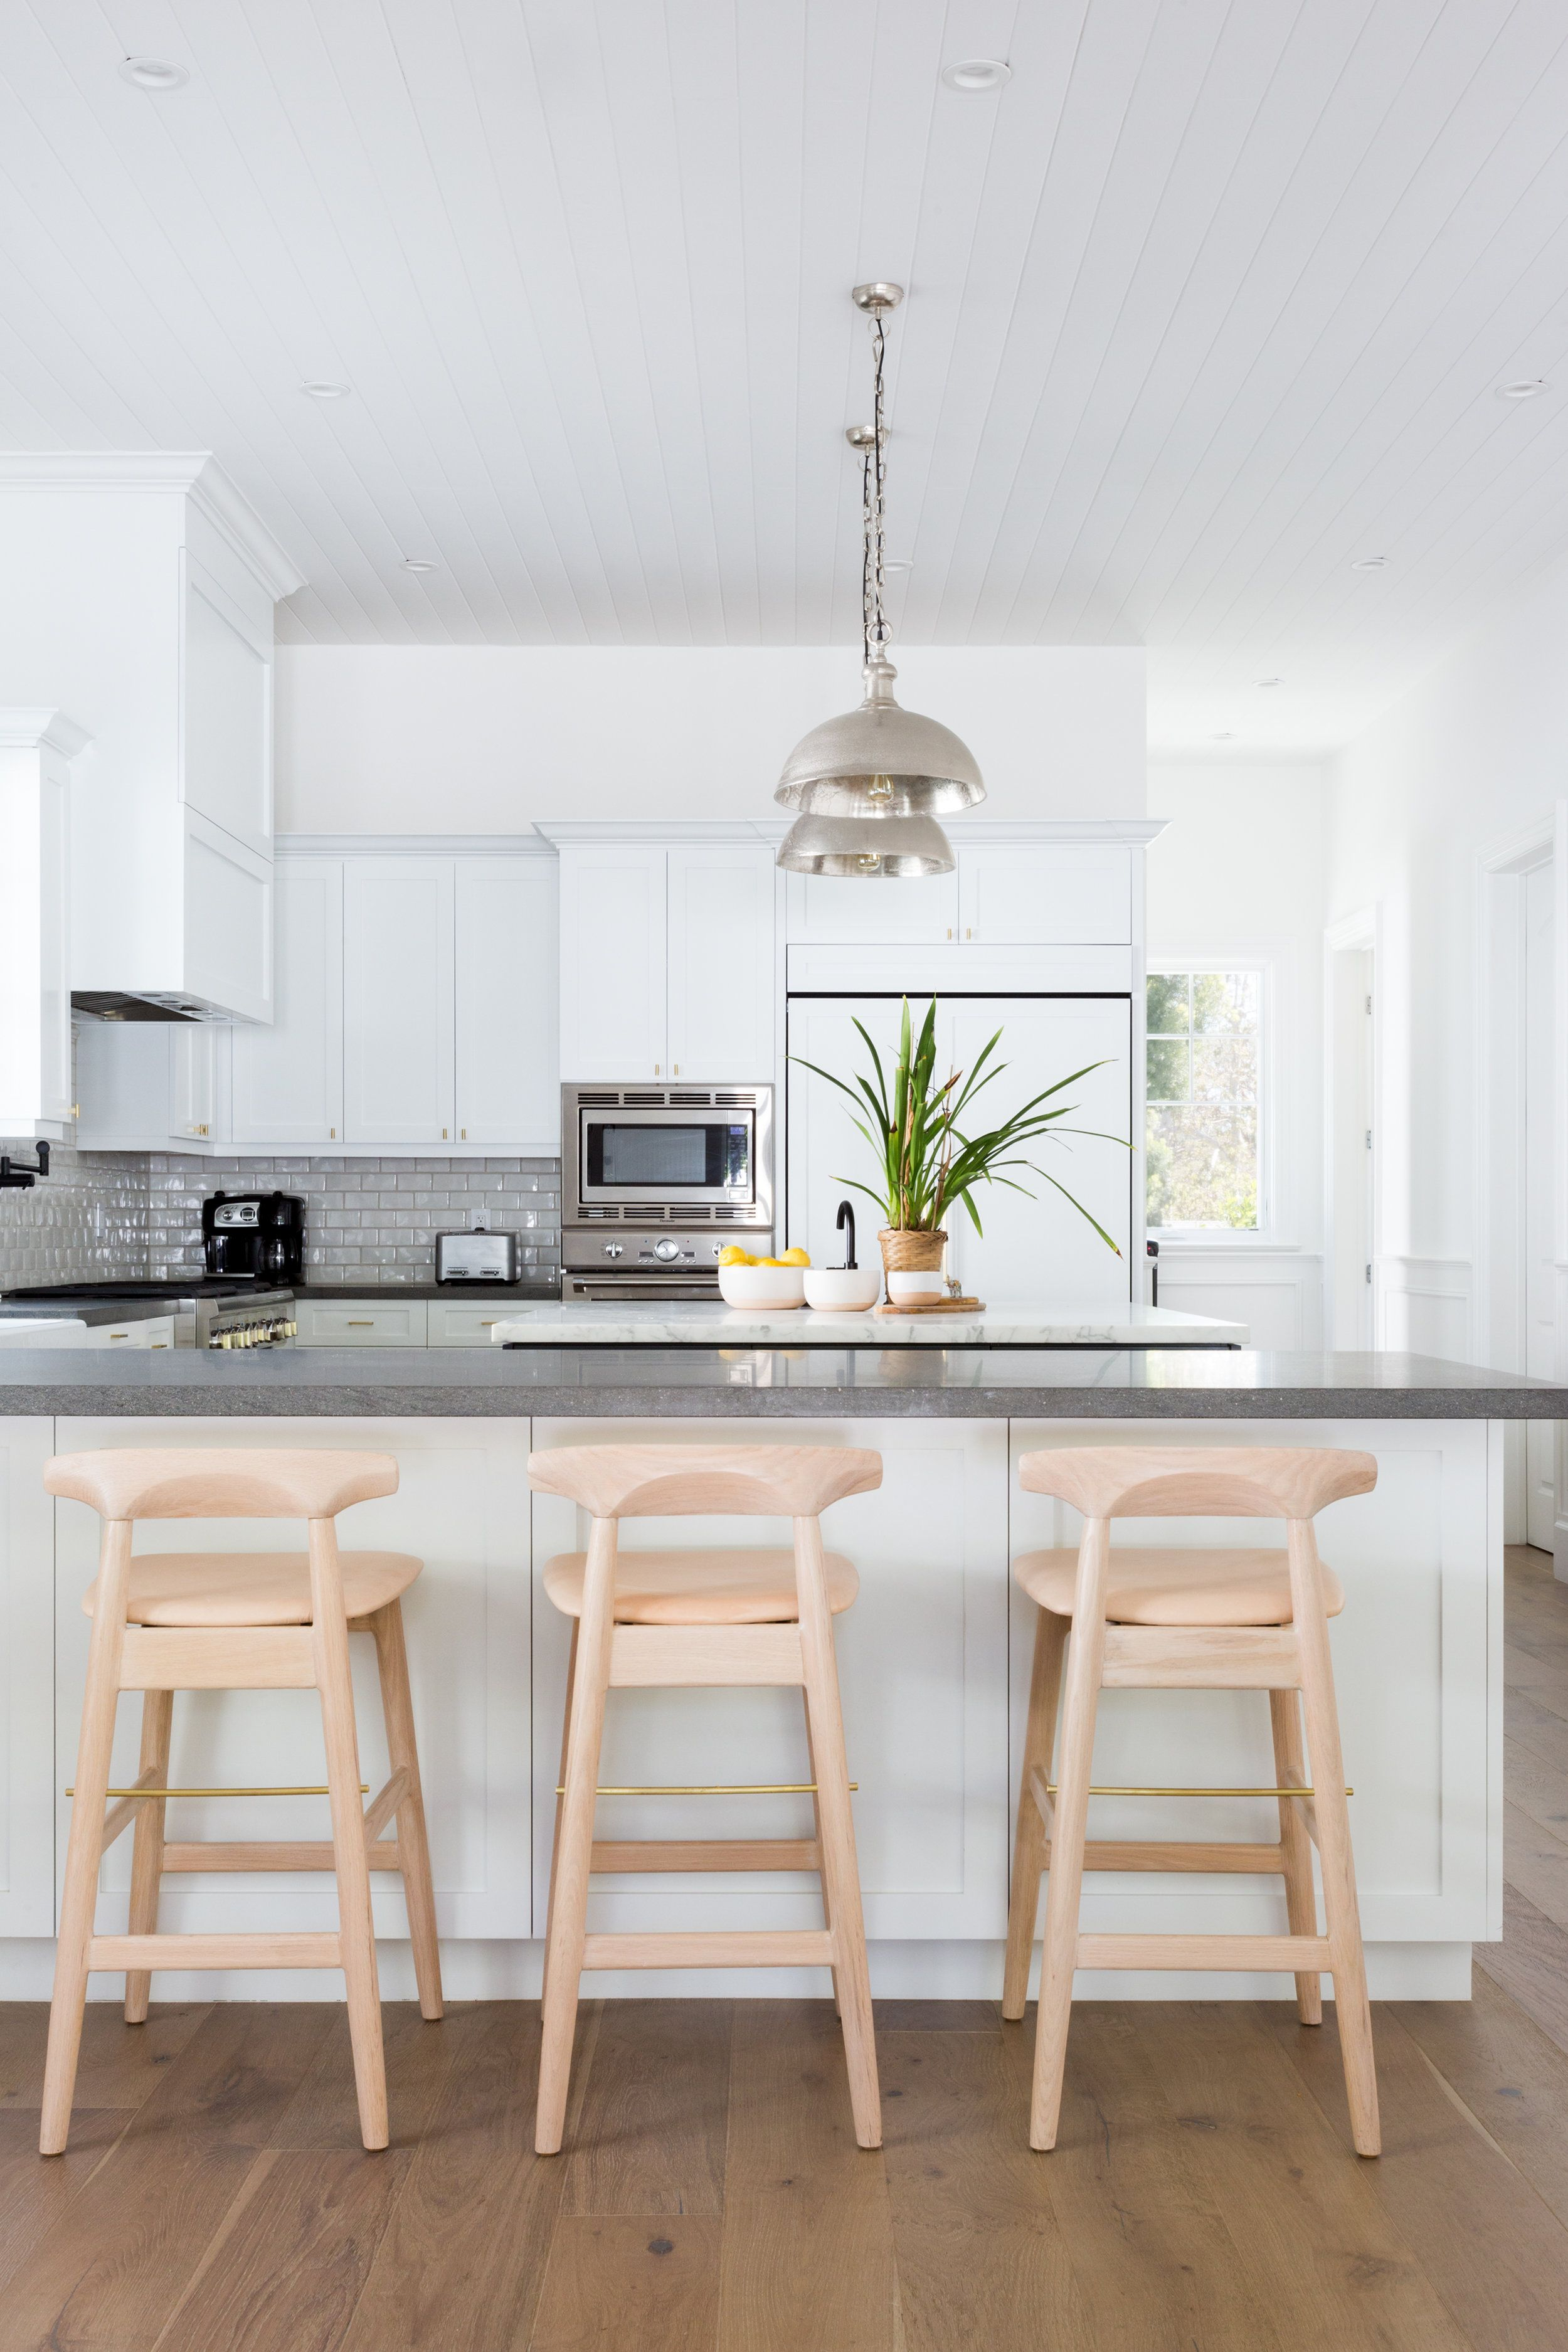 Love This Bright Kitchen The Wood Floors Mixed With The Light Wood Barstools Look Great Shapeside Inter Home Decor Kitchen Kitchen Renovation Kitchen Decor Light wooden bar stools